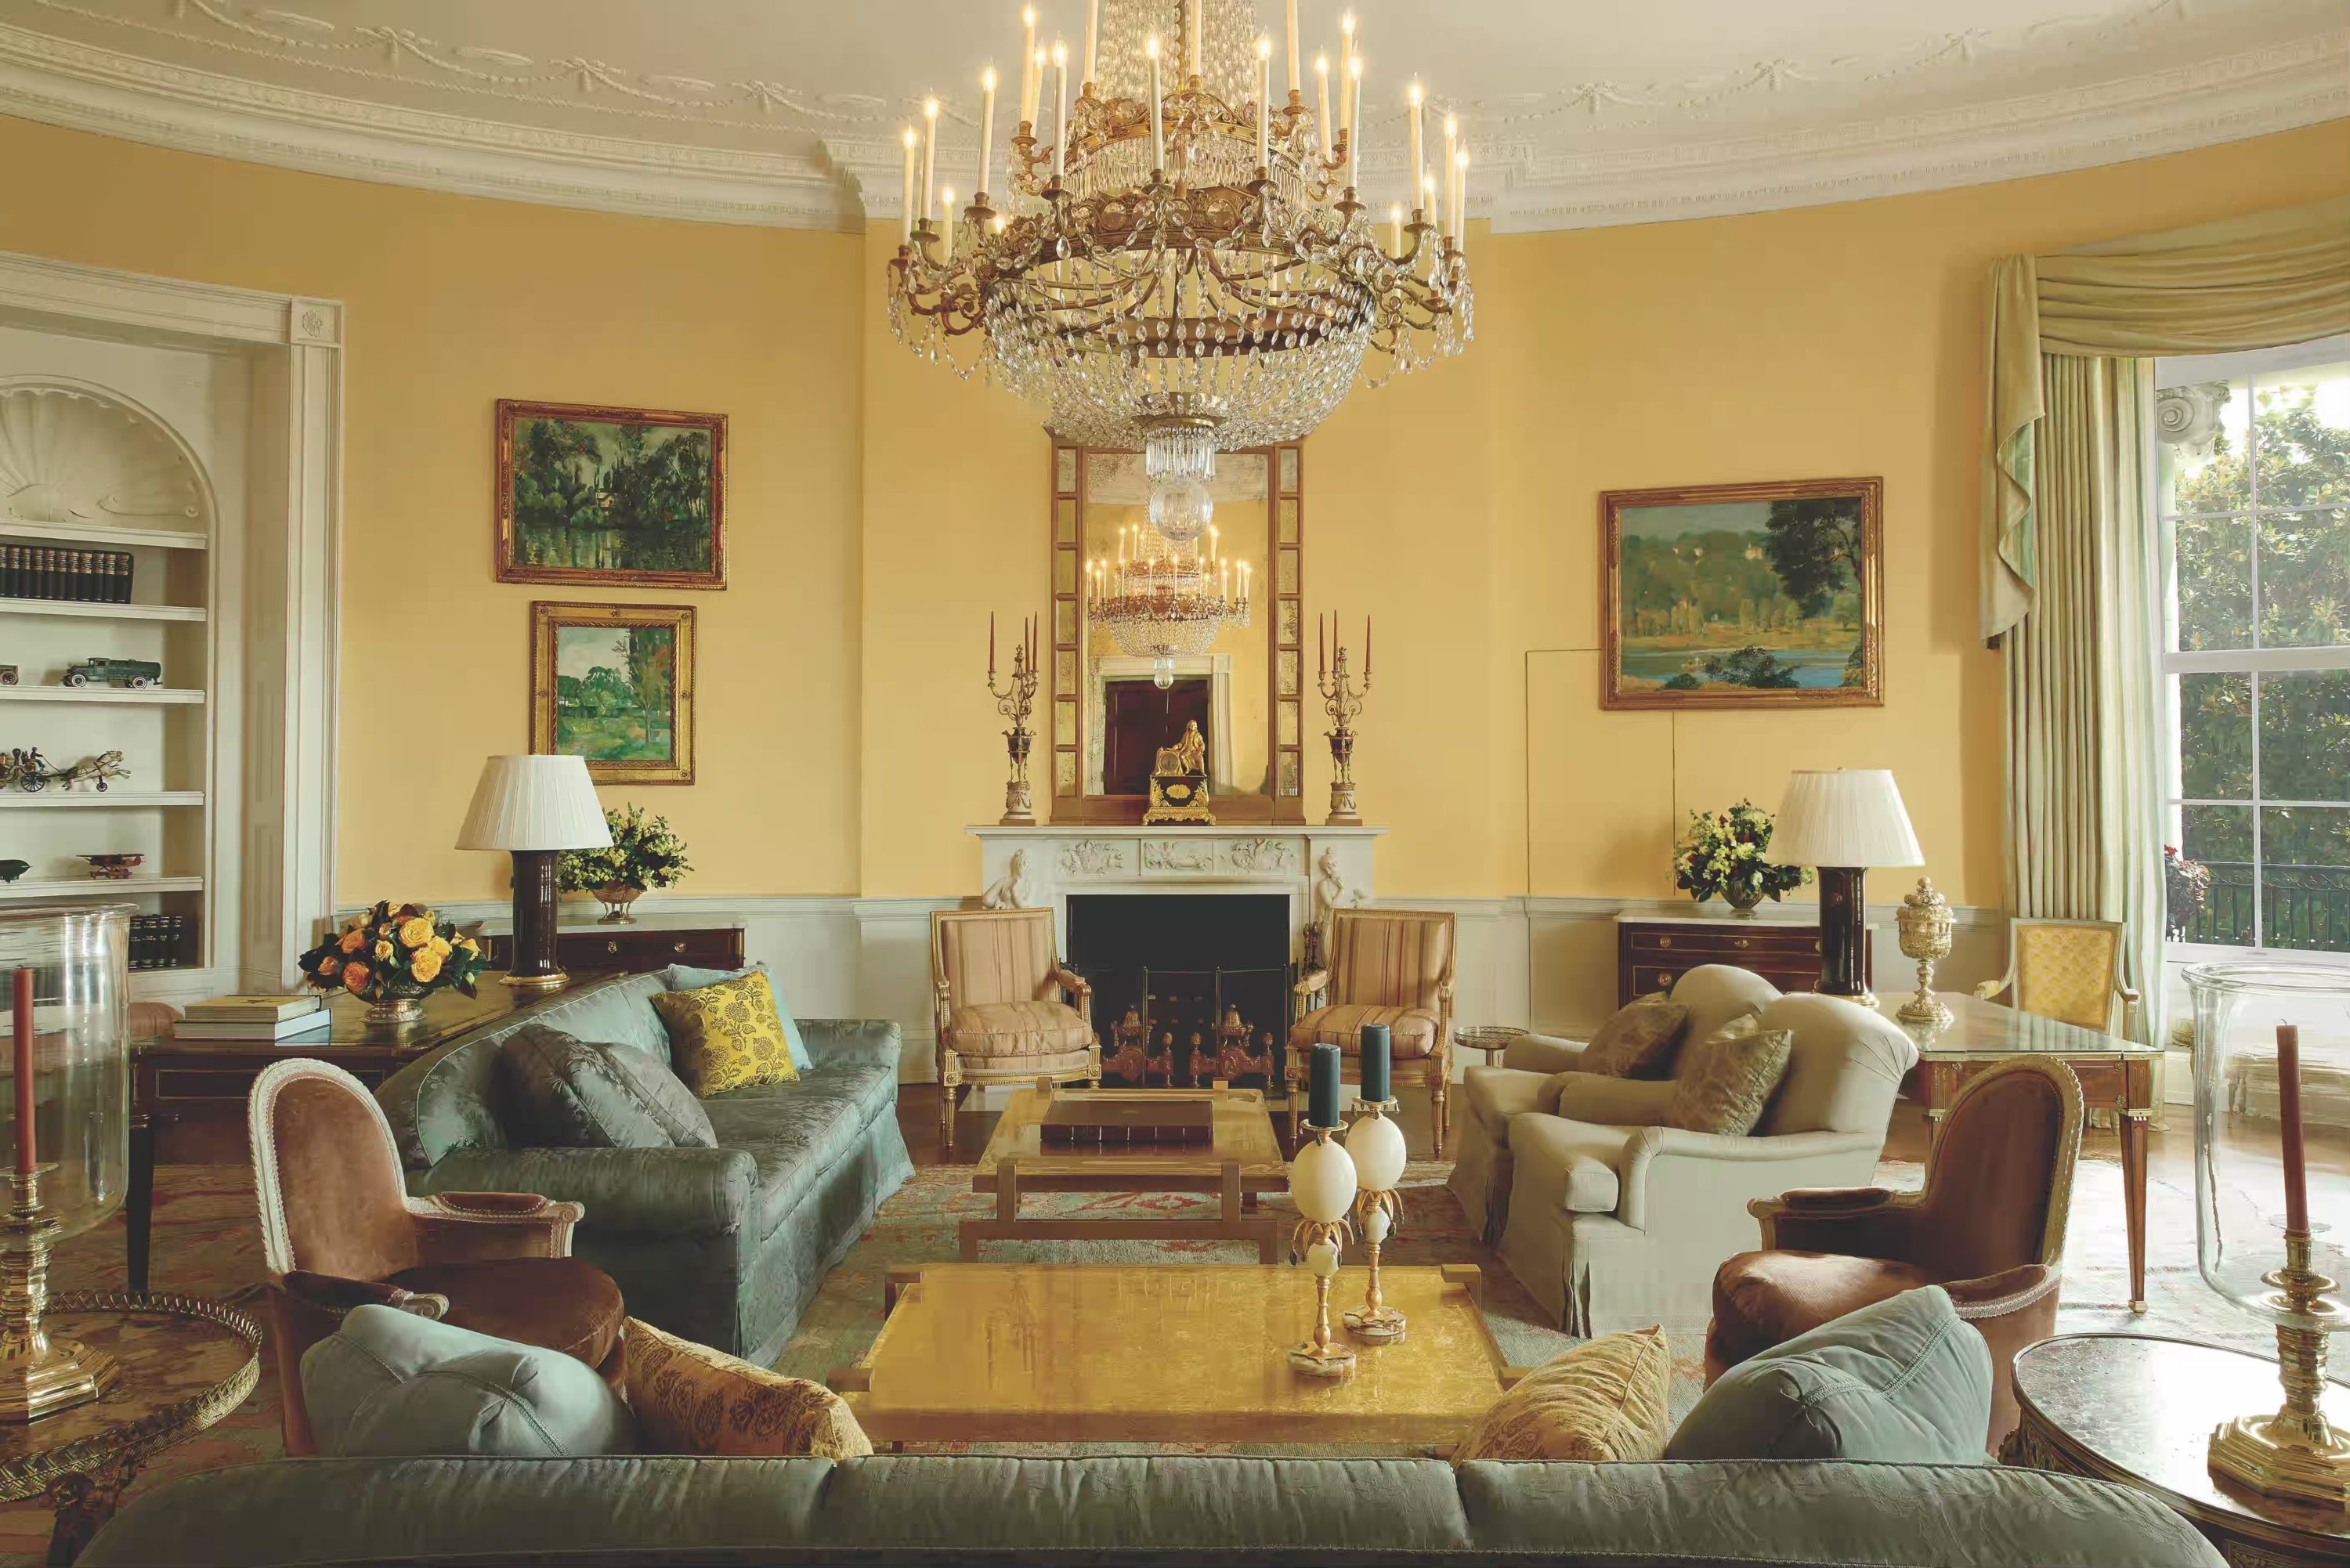 The Obamas Decorated With Finds From Crate Barrel Pottery Barn And Anthropologie According To A New Book About Their White House